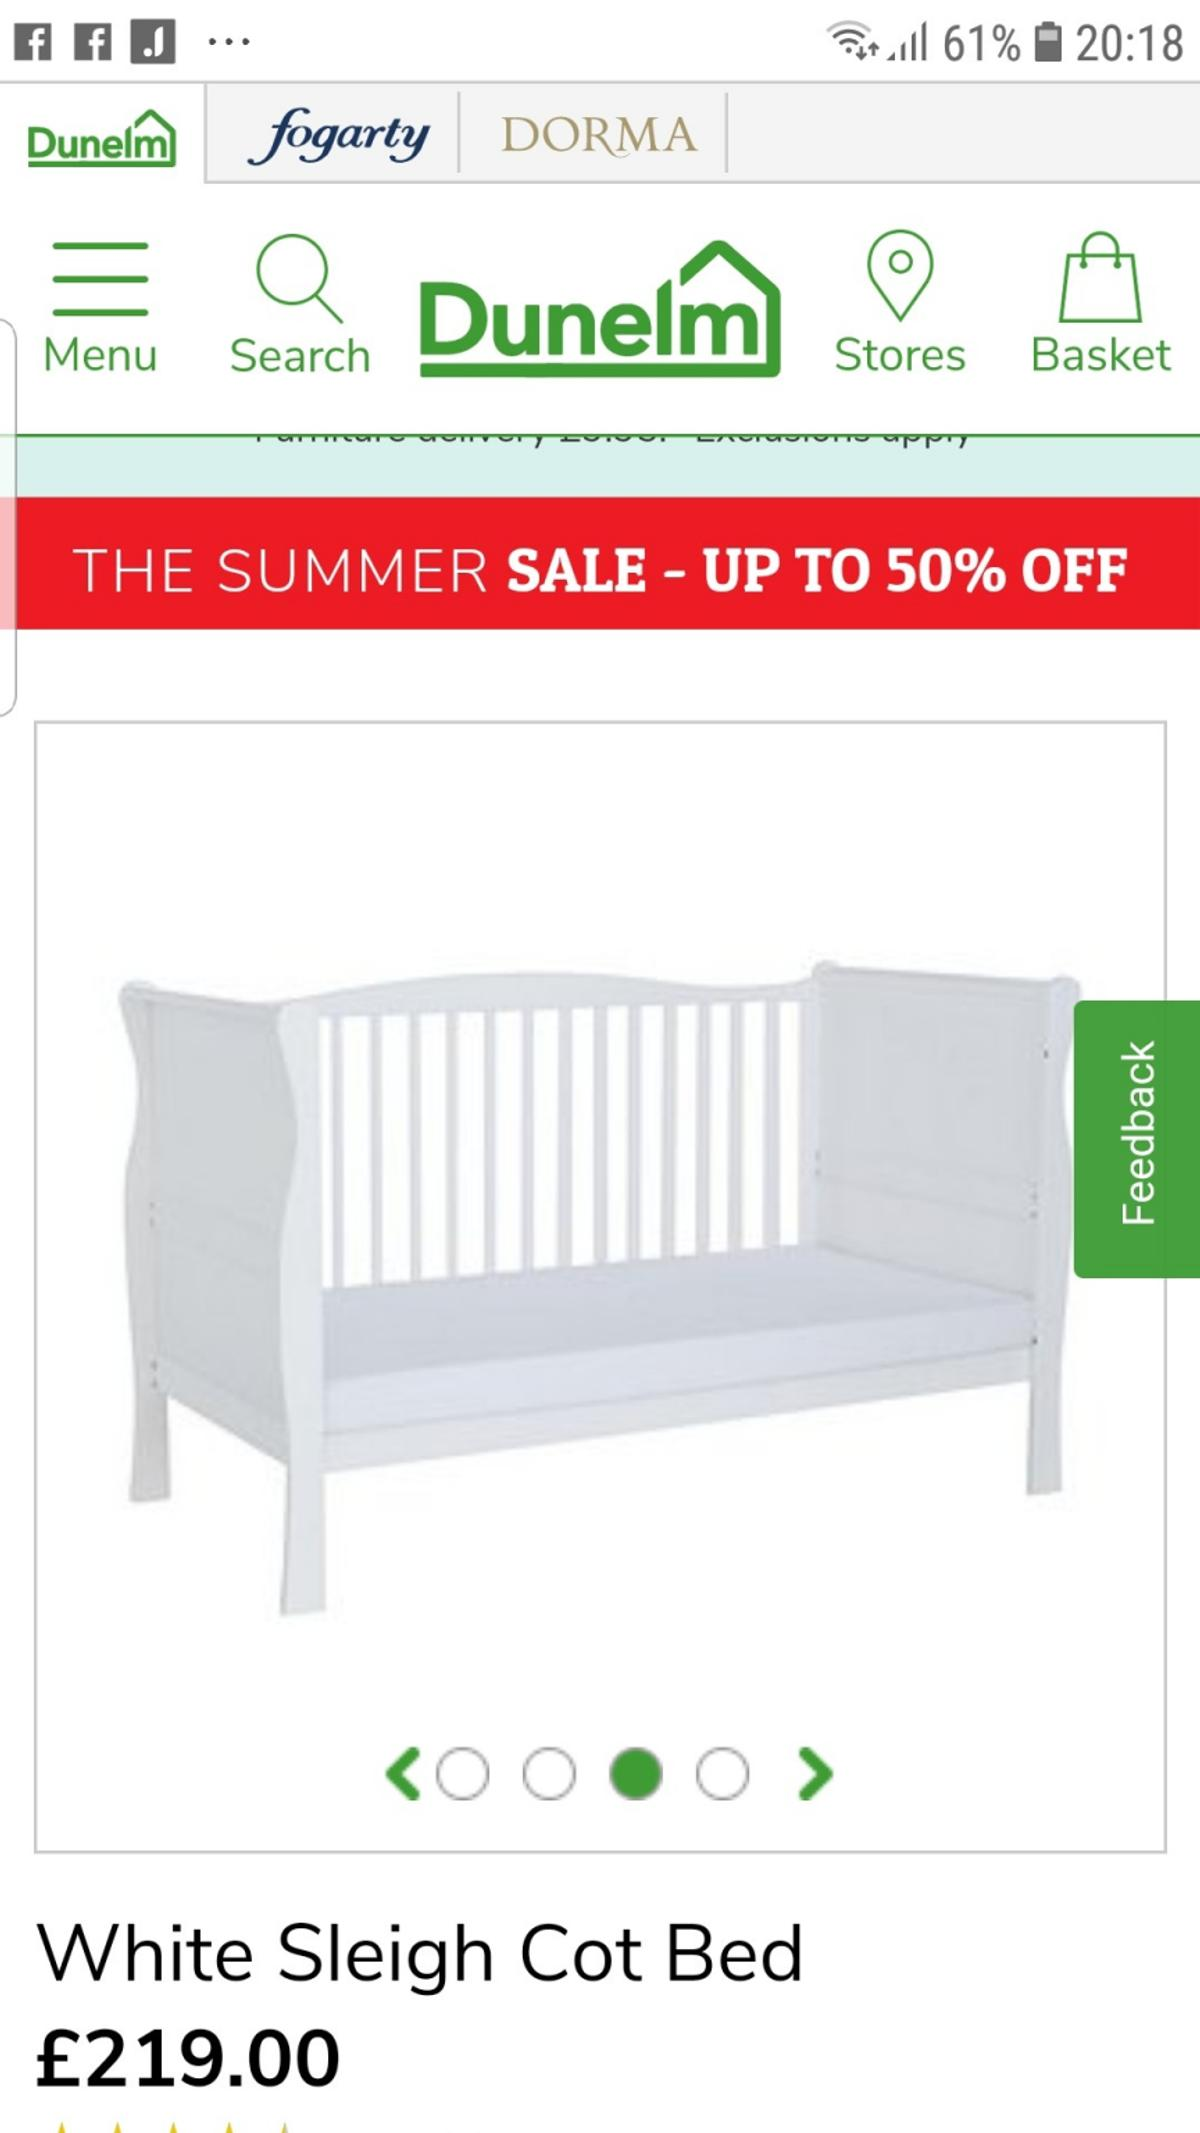 - White Wooden Sleigh Cot Bed From Kiddicare In Dudley Für 40,00